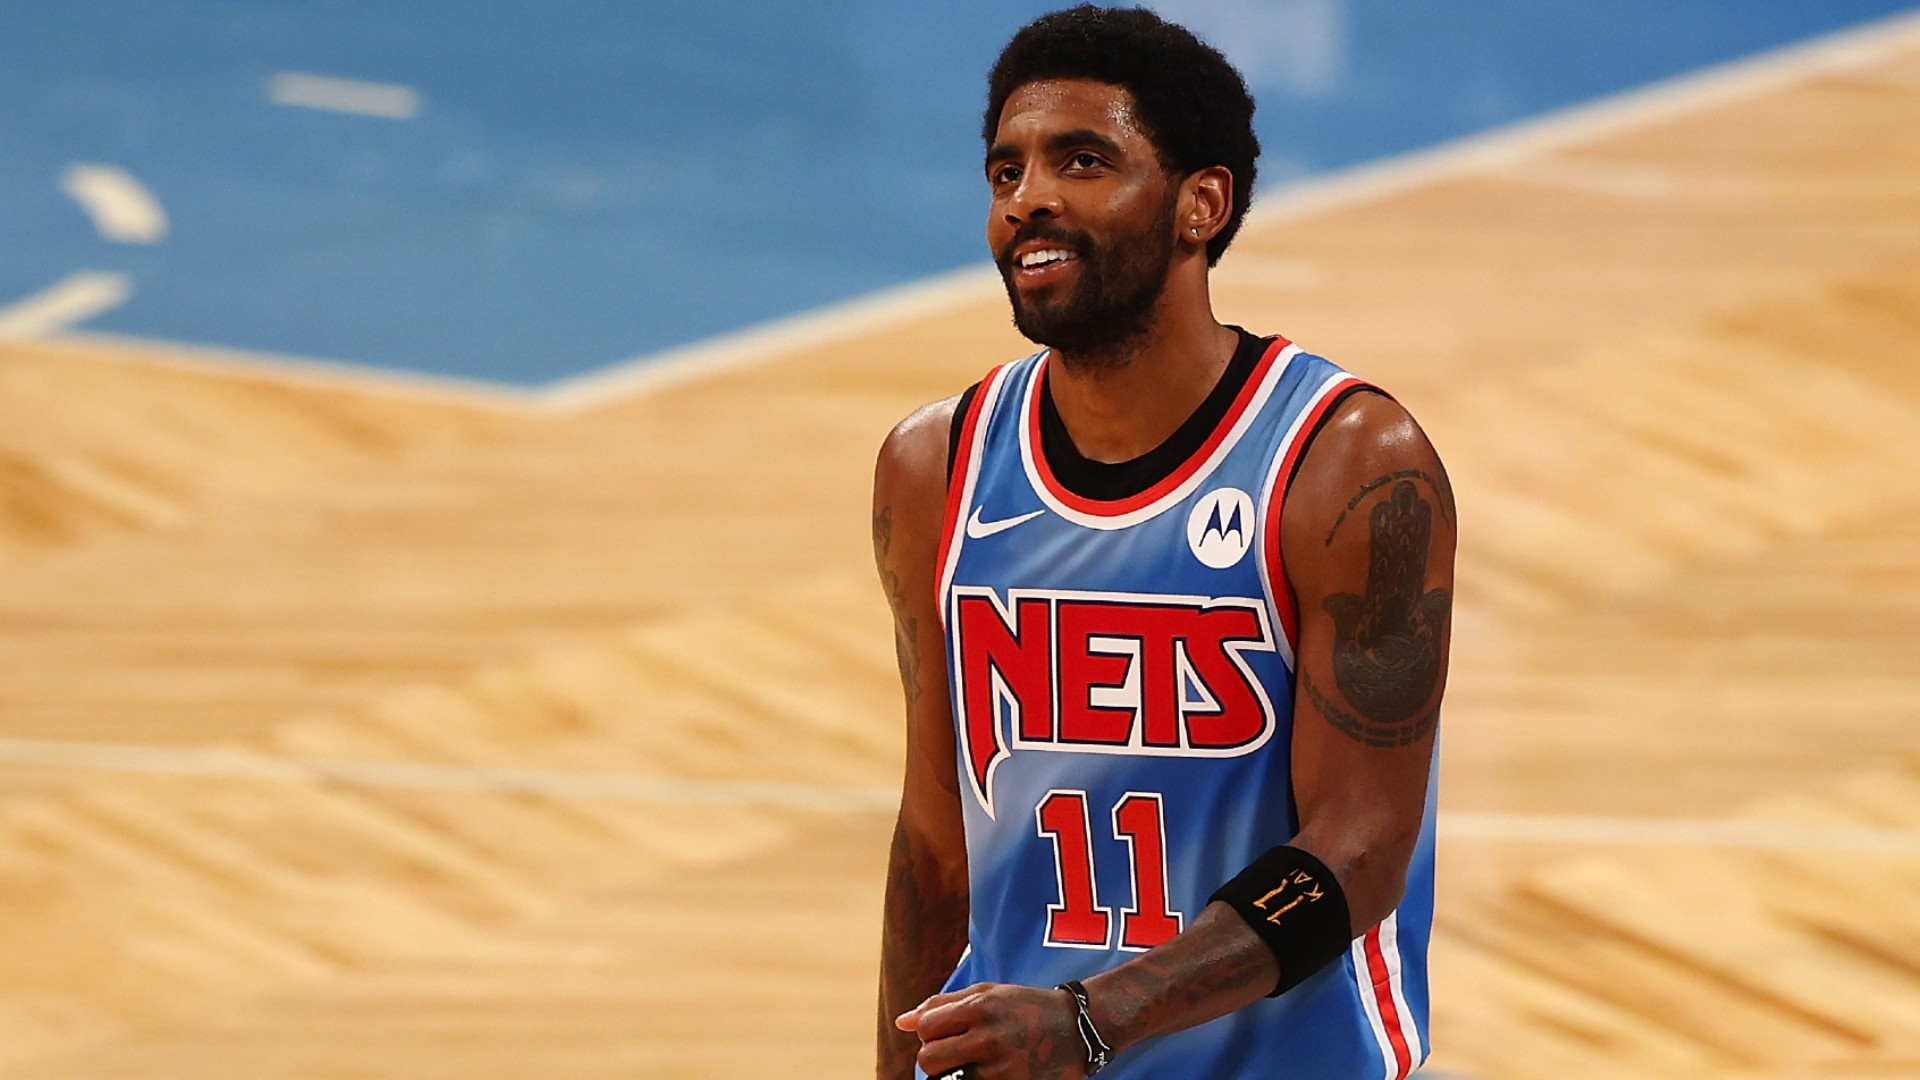 Nets star Irving to miss Timberwolves clash, Aldridge also sidelined